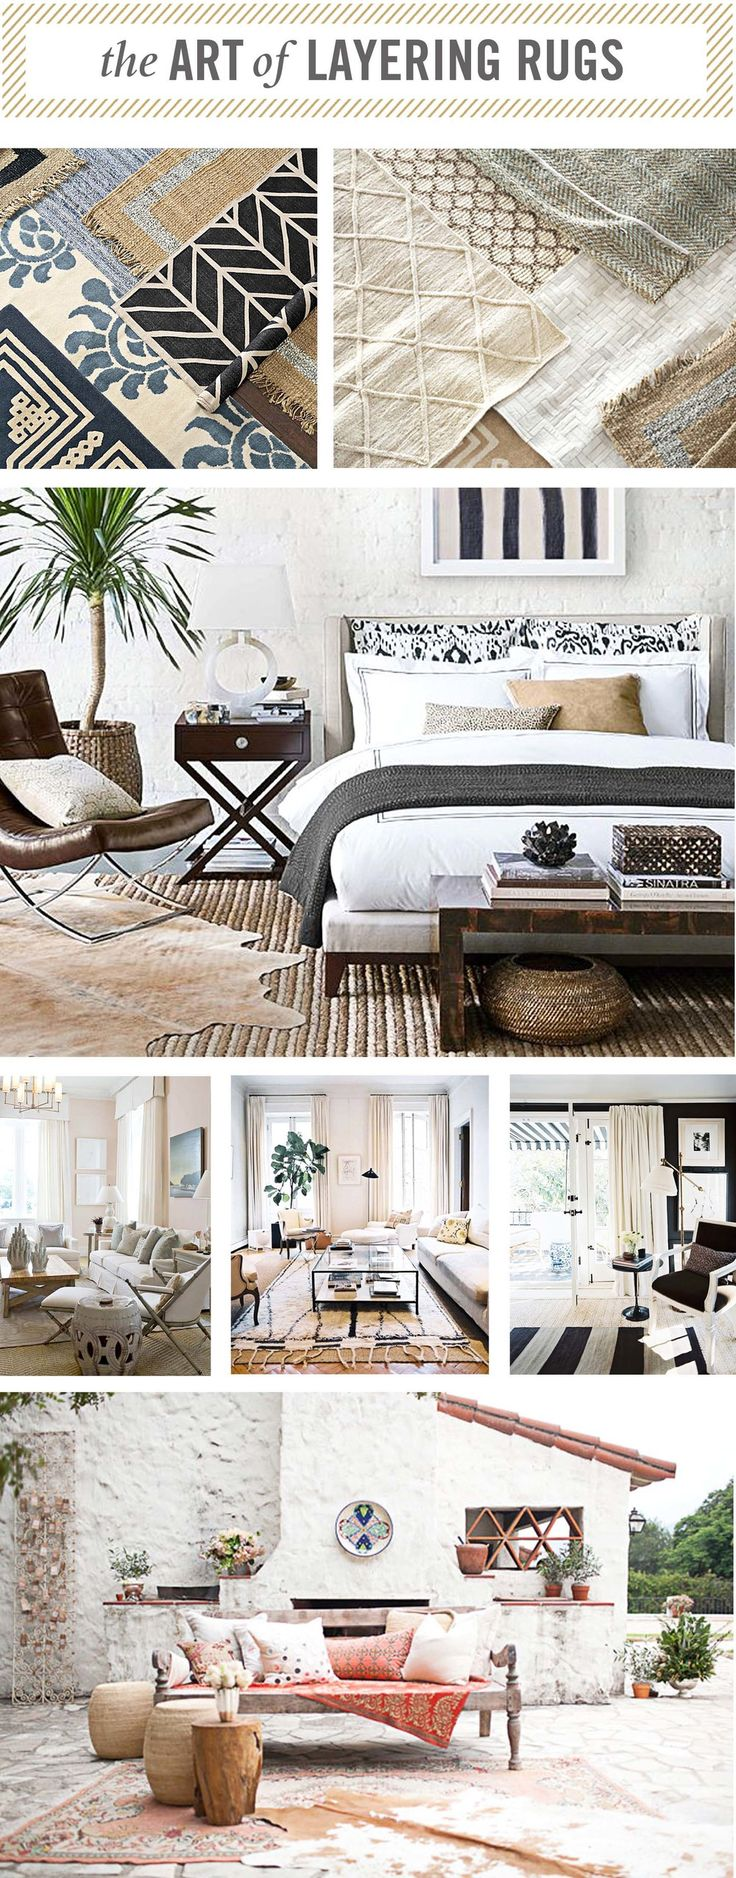 I am loving the layered rug look lately and there is definitely an art to it.  A good place to start out when layering rugs is a large natural sisal or  jute rug for your base and then you can layer a decorative piece on top of  that with some more pattern and color, but the sisal will give some good  texture.  I also like the look of the animal hides layered